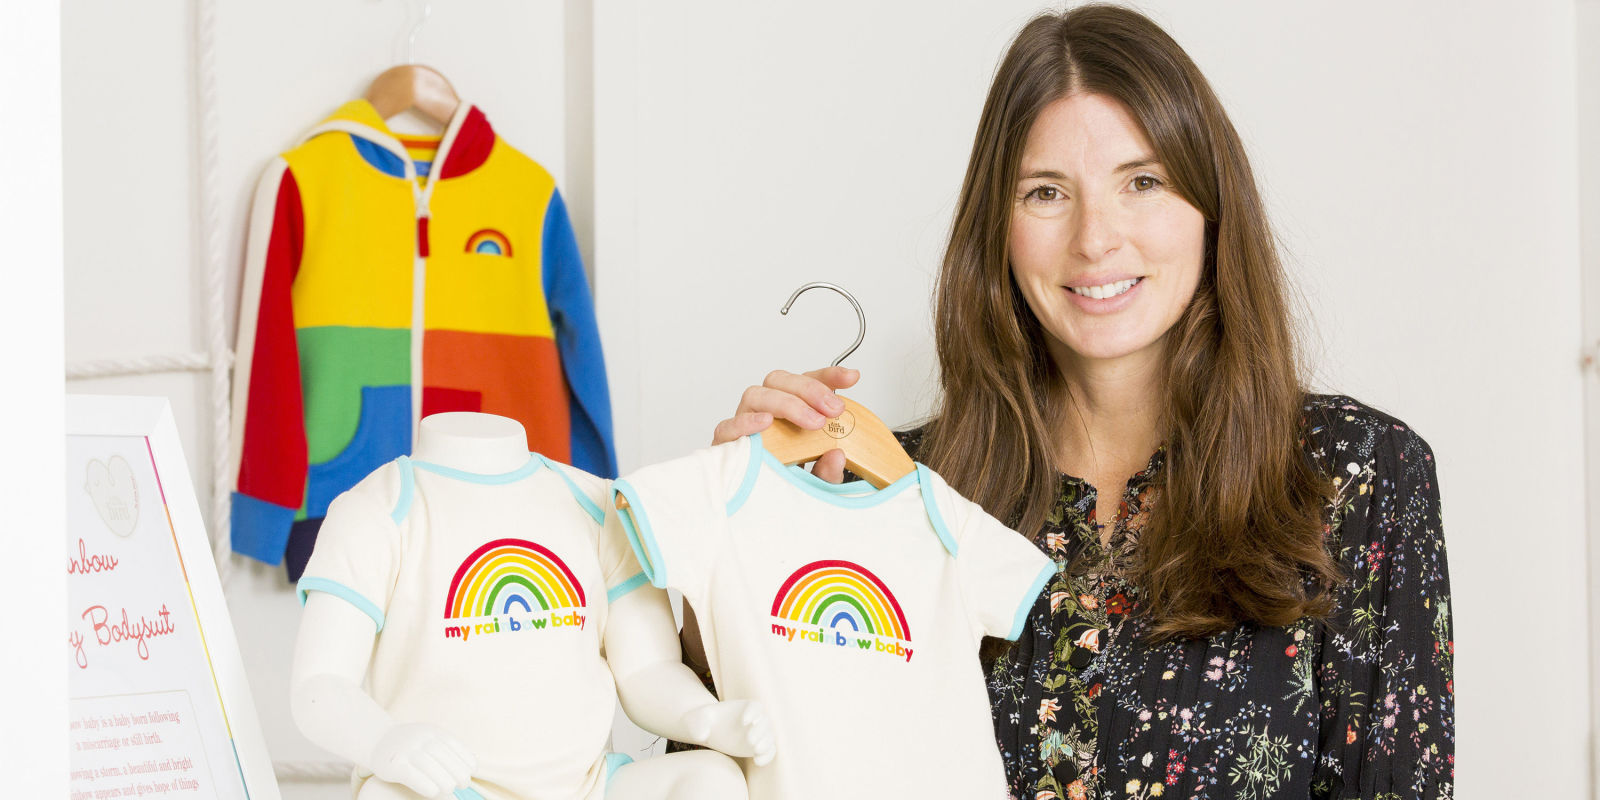 jools oliver creates rainbow charity collection for. Black Bedroom Furniture Sets. Home Design Ideas